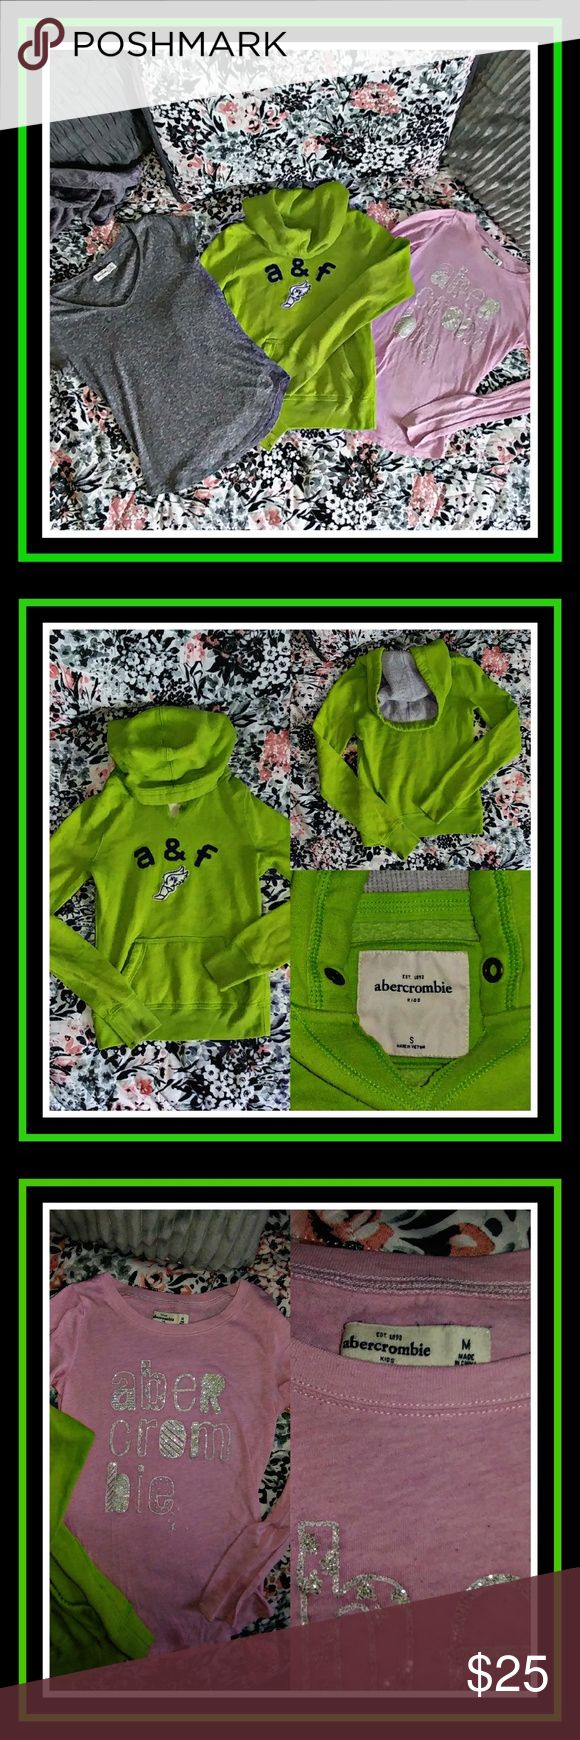 🌈 PRELOVED! GIRL'S ABERCROMBIE KID LOT - SIZE S/M PRELOVED & GENTLY USED BUT NO RIPS STAINS OR TEARS! FITS GIRLS 14/16 YOUTH.  💲 BUNDLE & SAVE! IF BUNDLE EXCEEDS THE 5LB WEIGHT LIMIT ADDITIONAL SHIPPING IS REQUIRED TO BE PAID FOR BY BUYER 💲  ⚓ NO TRADES ⚓ NO LOW BALL OFFERS ⚓ I DO NOT MODEL MY LISTINGS ⚓ NO OFF POSH TRANSACTIONS  📬 I USUALLY SHIP IN 24 HRS EXCEPT WEEKENDS & HOLIDAYS SHIP THE NEXT BUSINESS DAY!   THANKS FOR LOOKING! ⚓AM7X70 Abercombie Kids Shirts & Tops